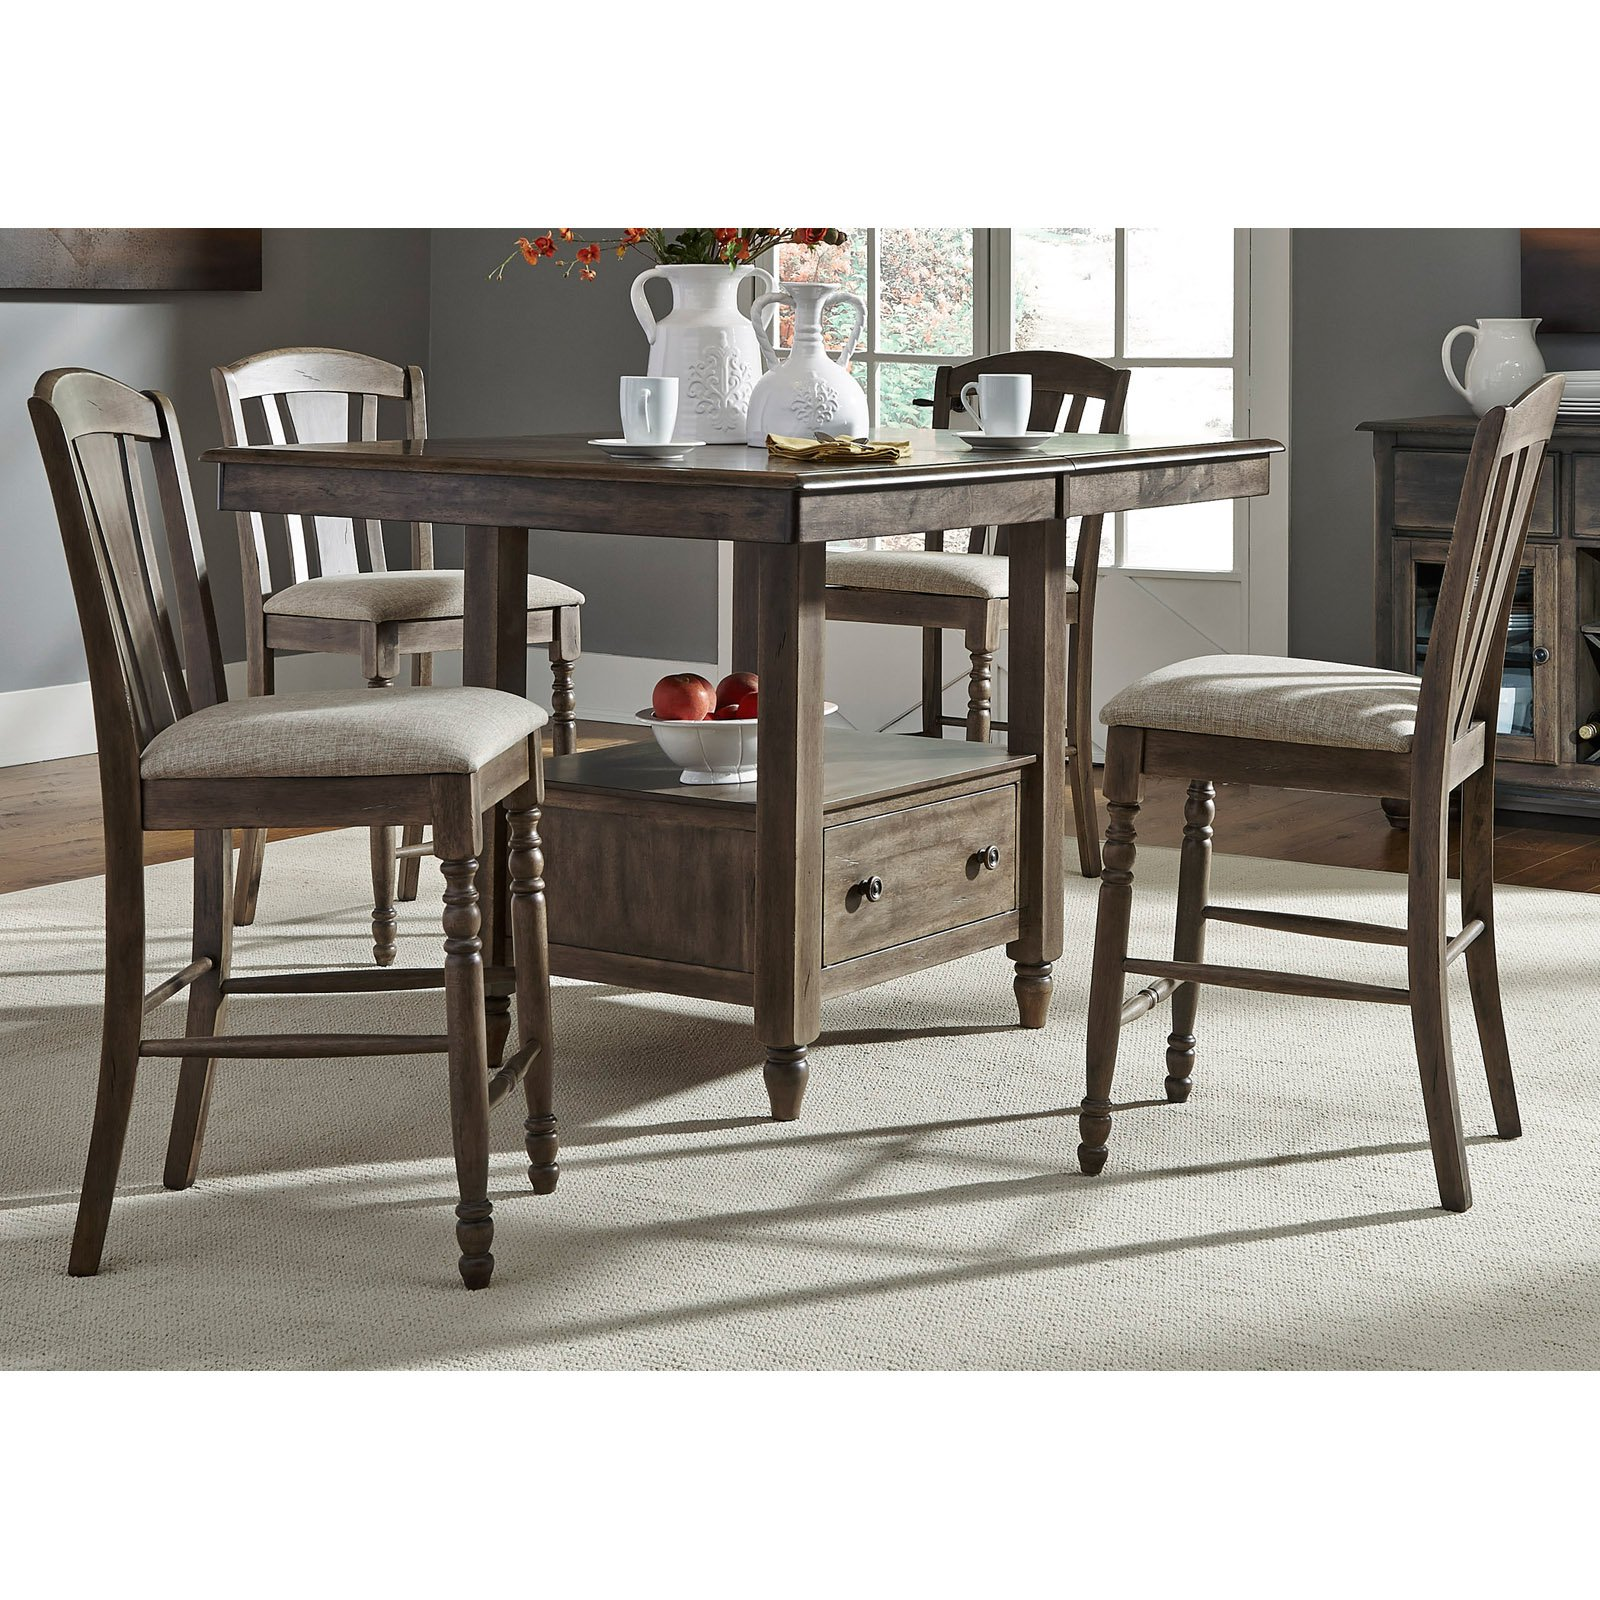 Liberty Furniture Industries Candlewood Gathering Dining Table